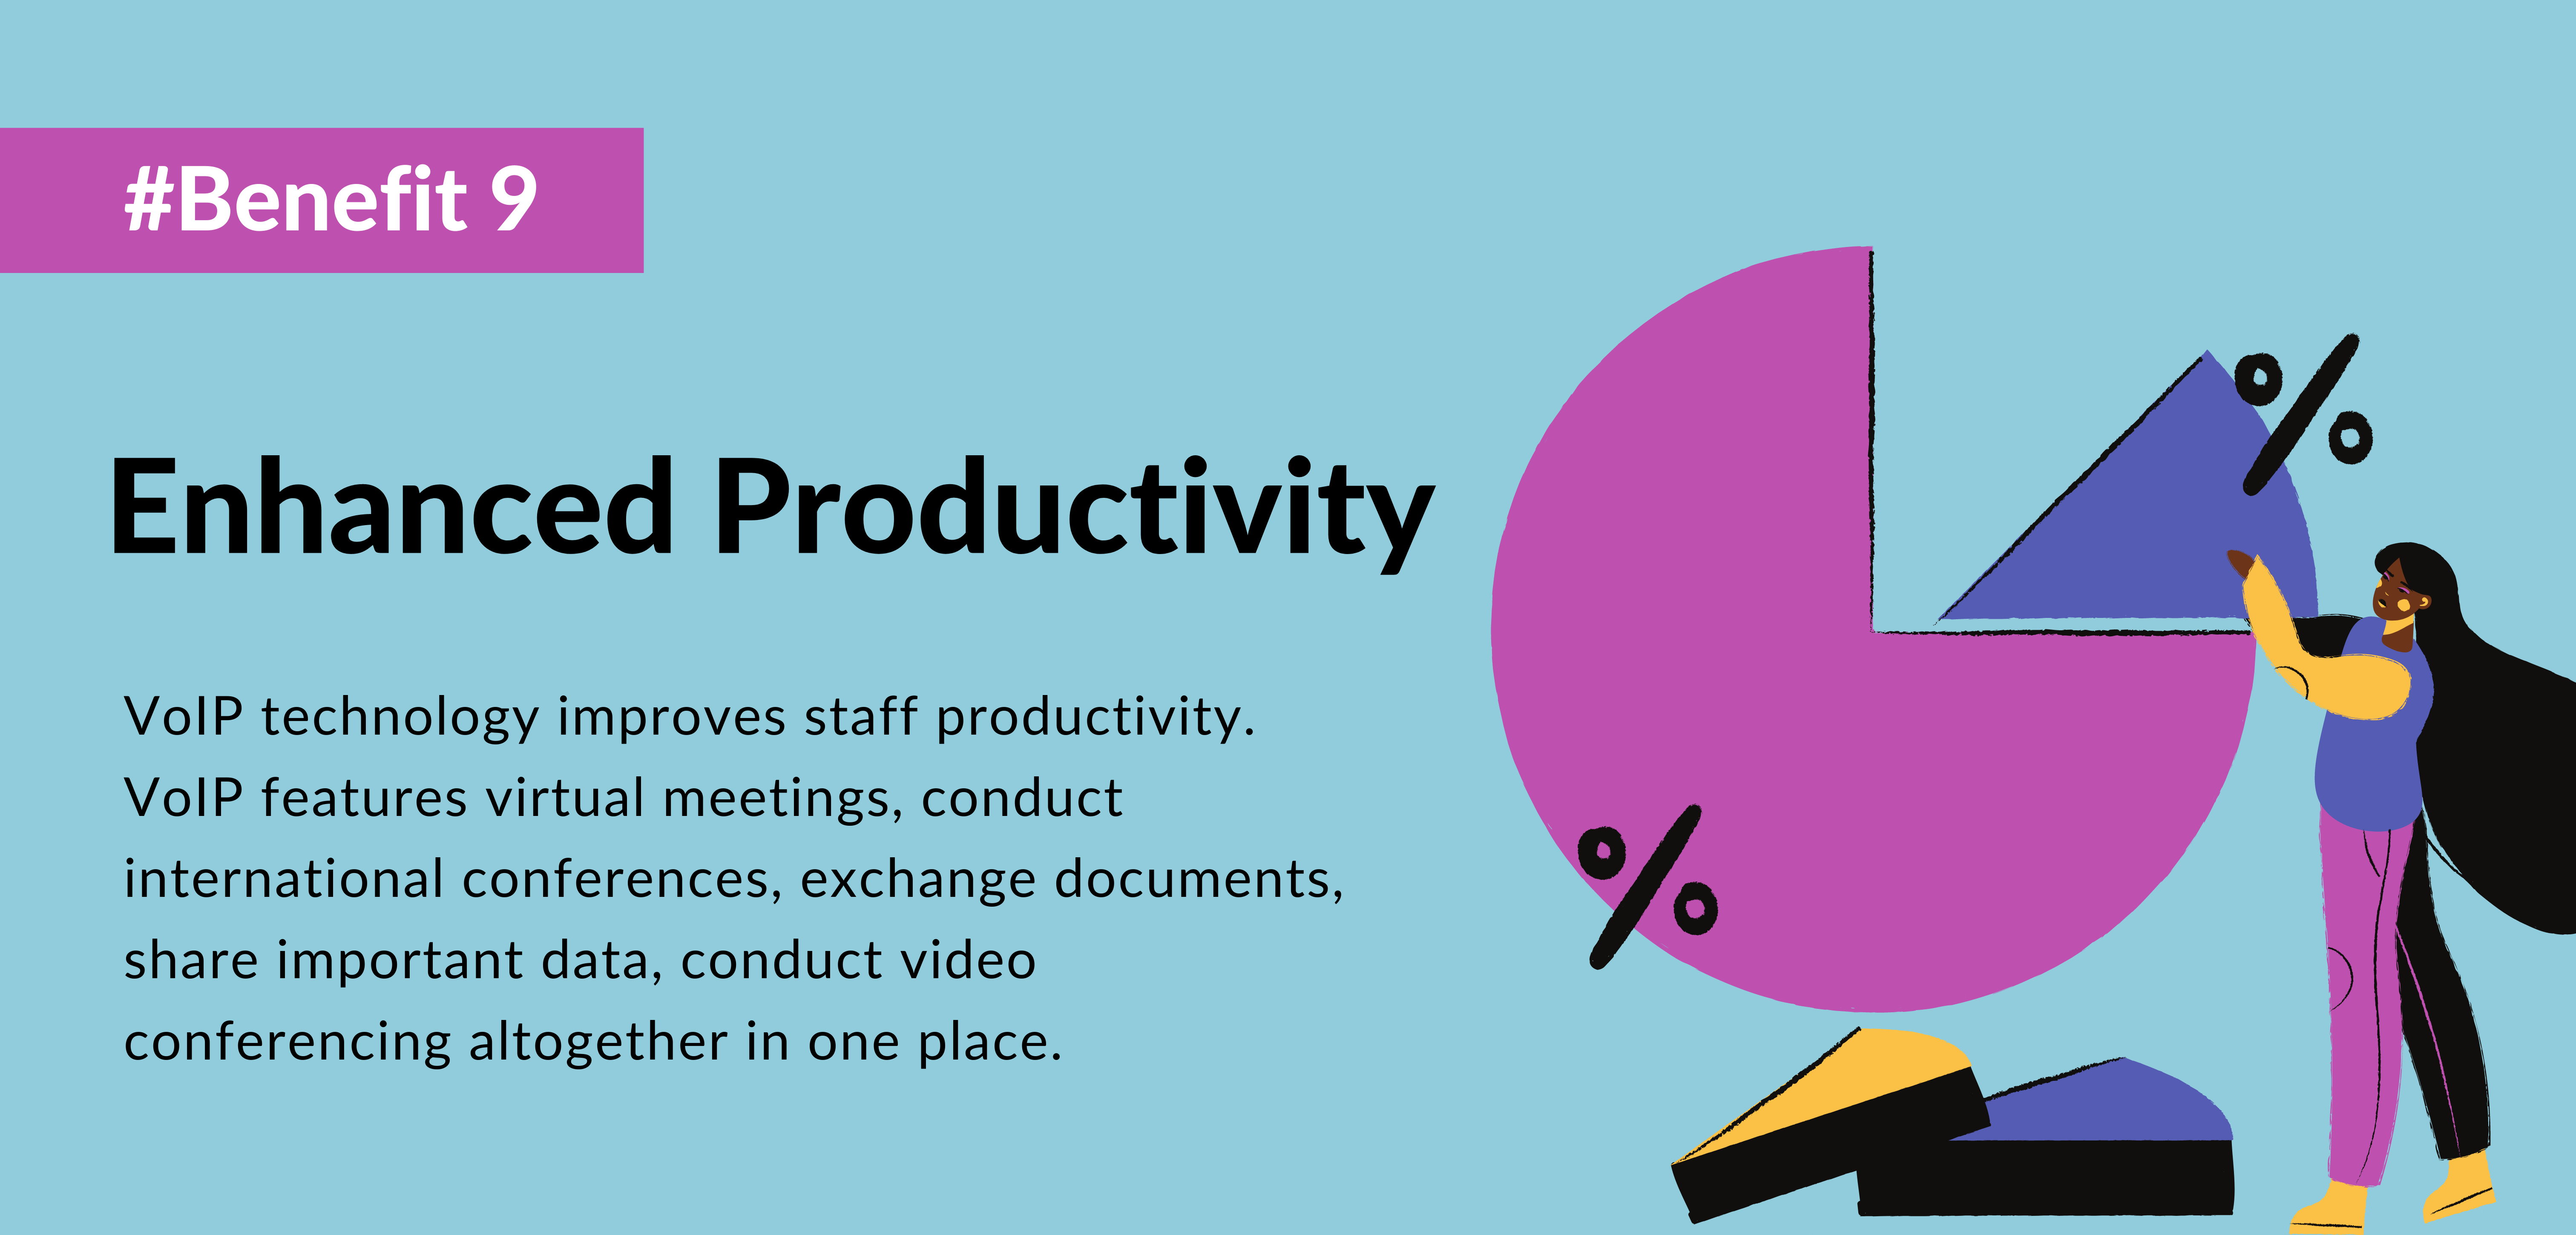 ninth benefit of using voip is Enhanced Productivity- telecloud